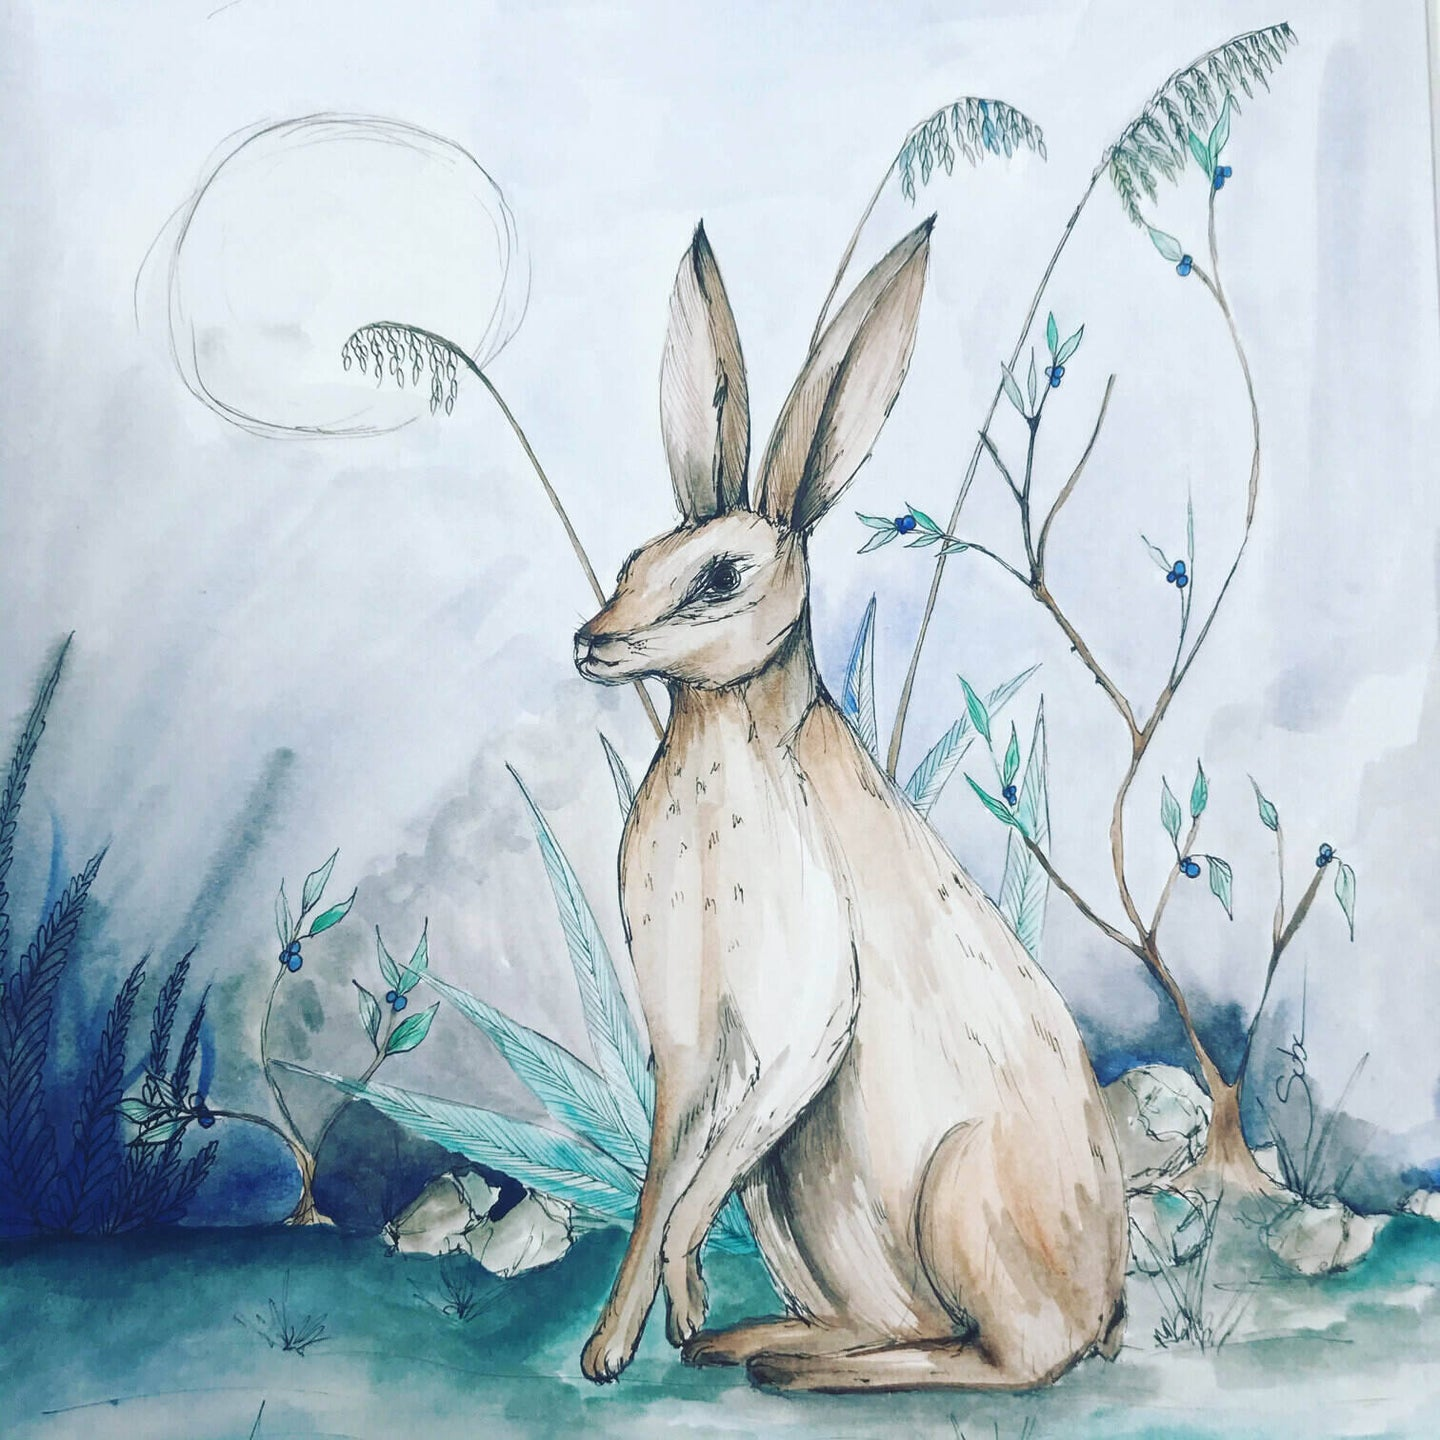 Moonlight Hare a watercolor painting by Suba